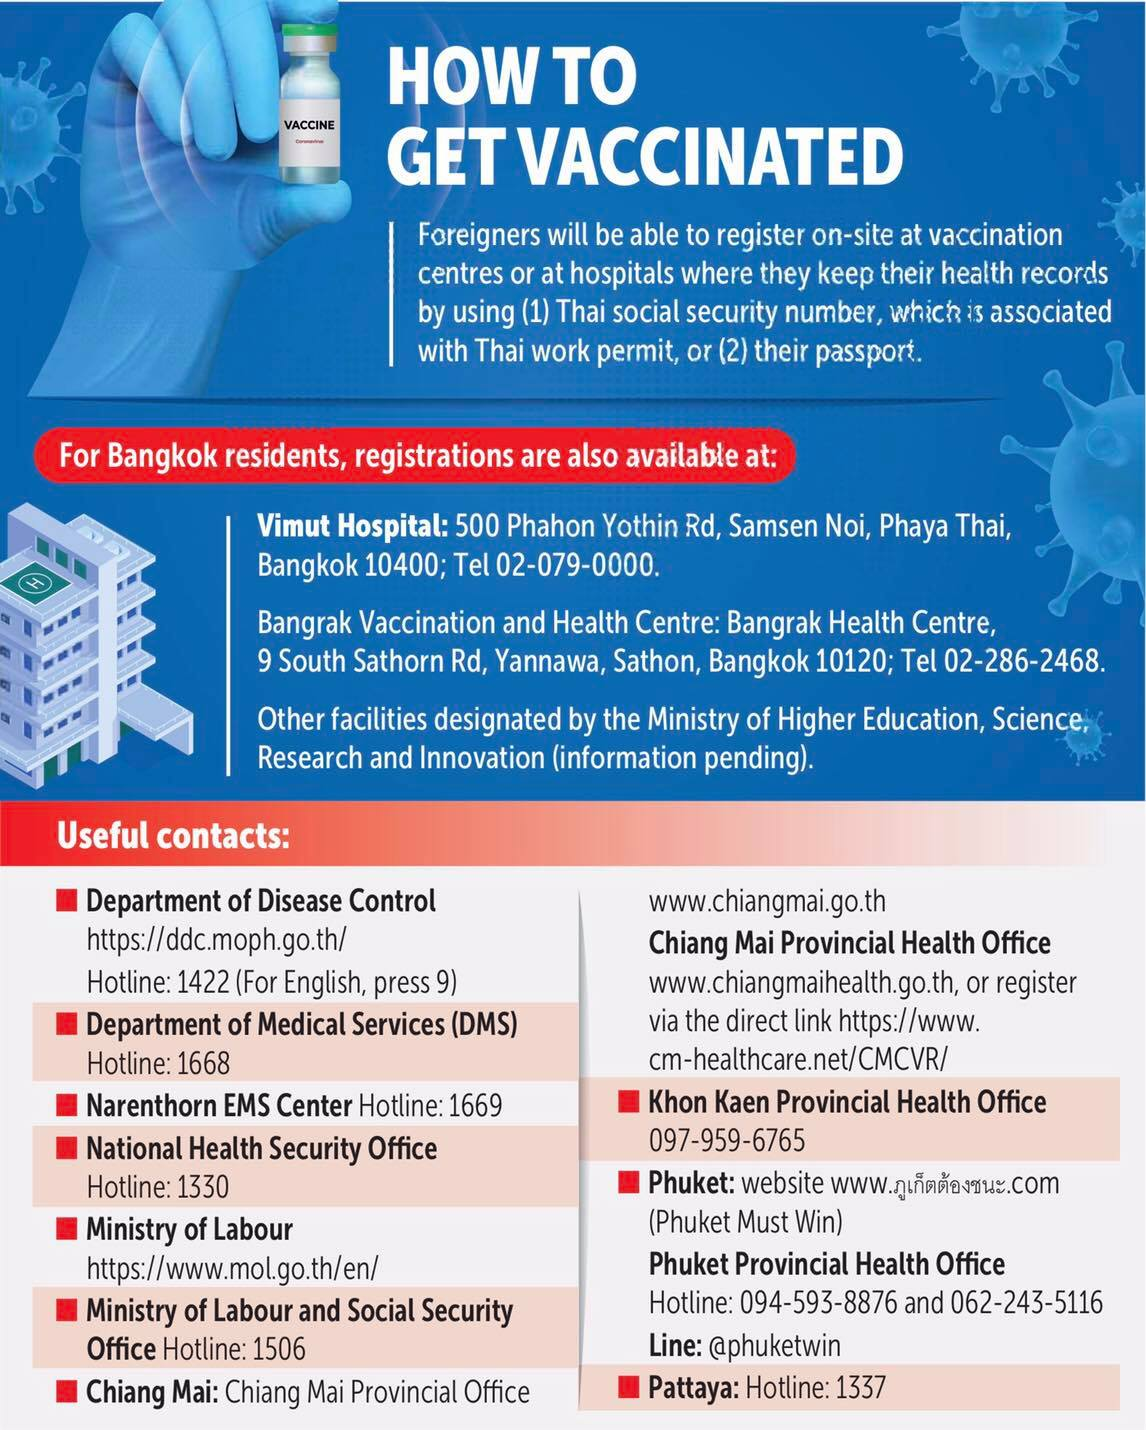 How to get vaccinated for foreign nationals infographic